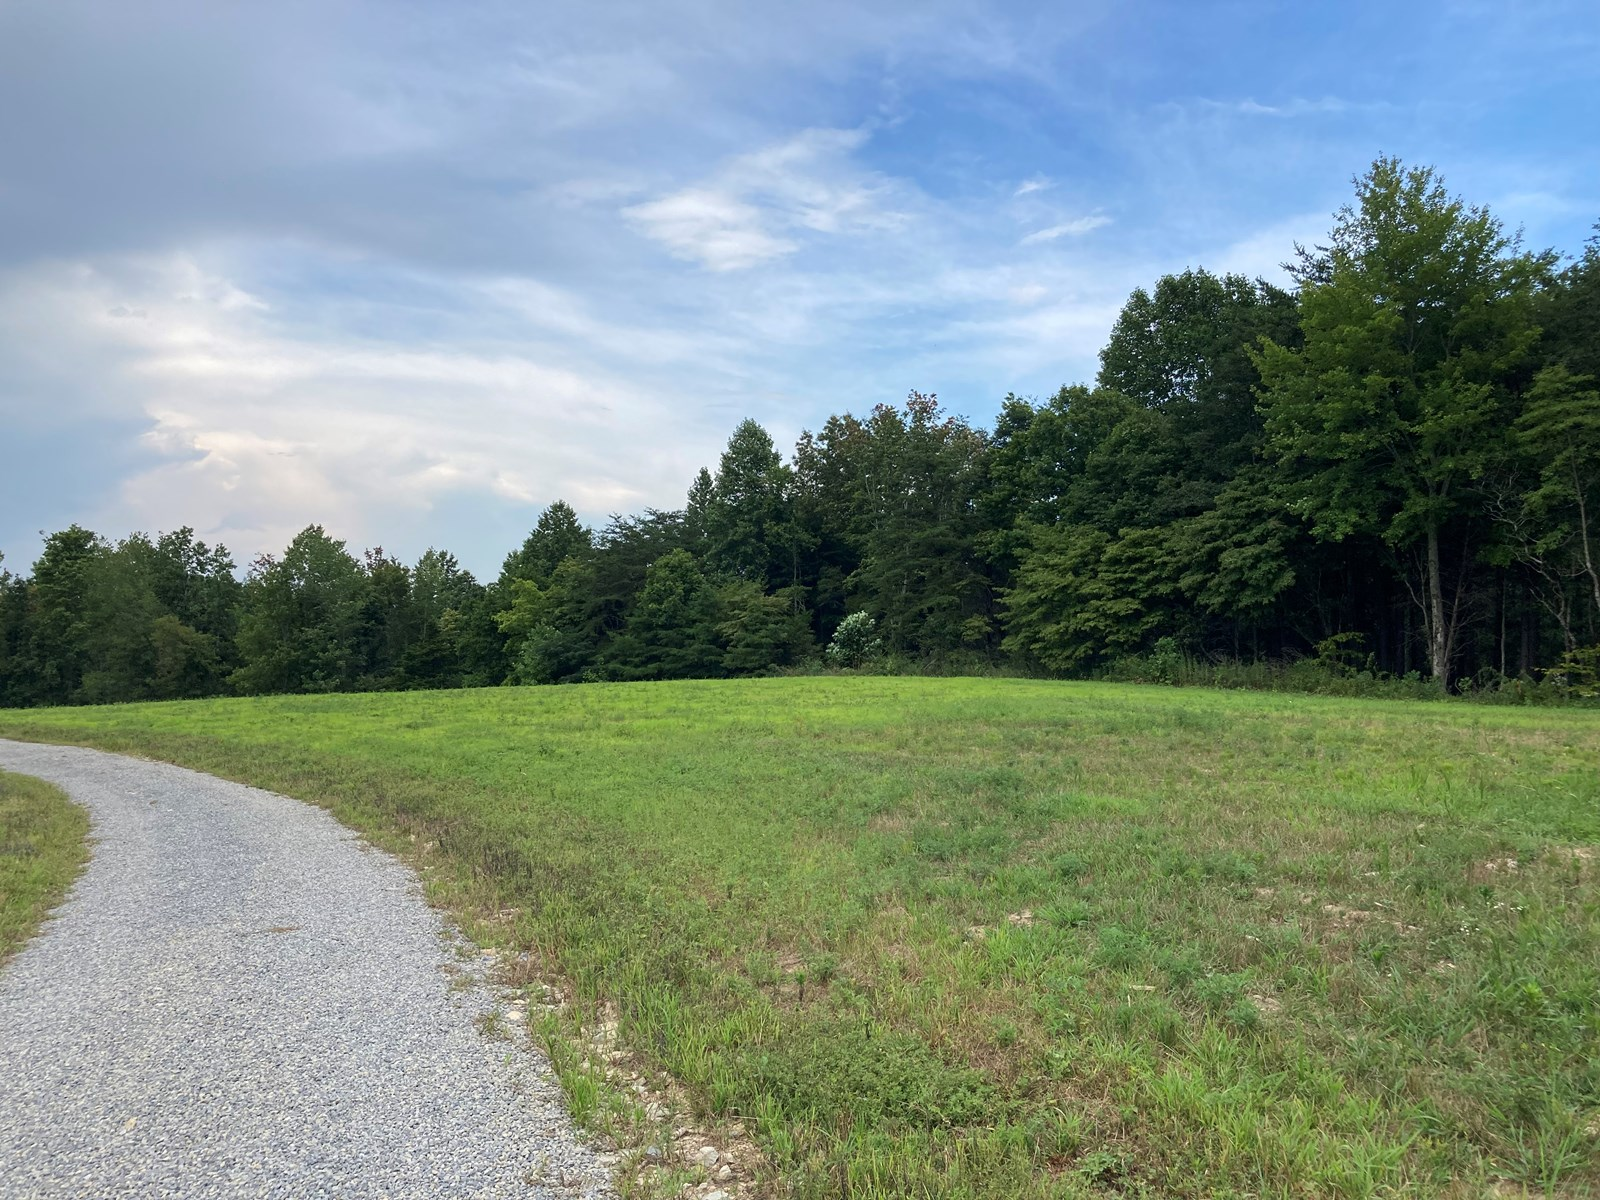 UNRESTRICTED LAND-BUILDING SITES-CLEAR ACREAGE-COLUMBIA, KY